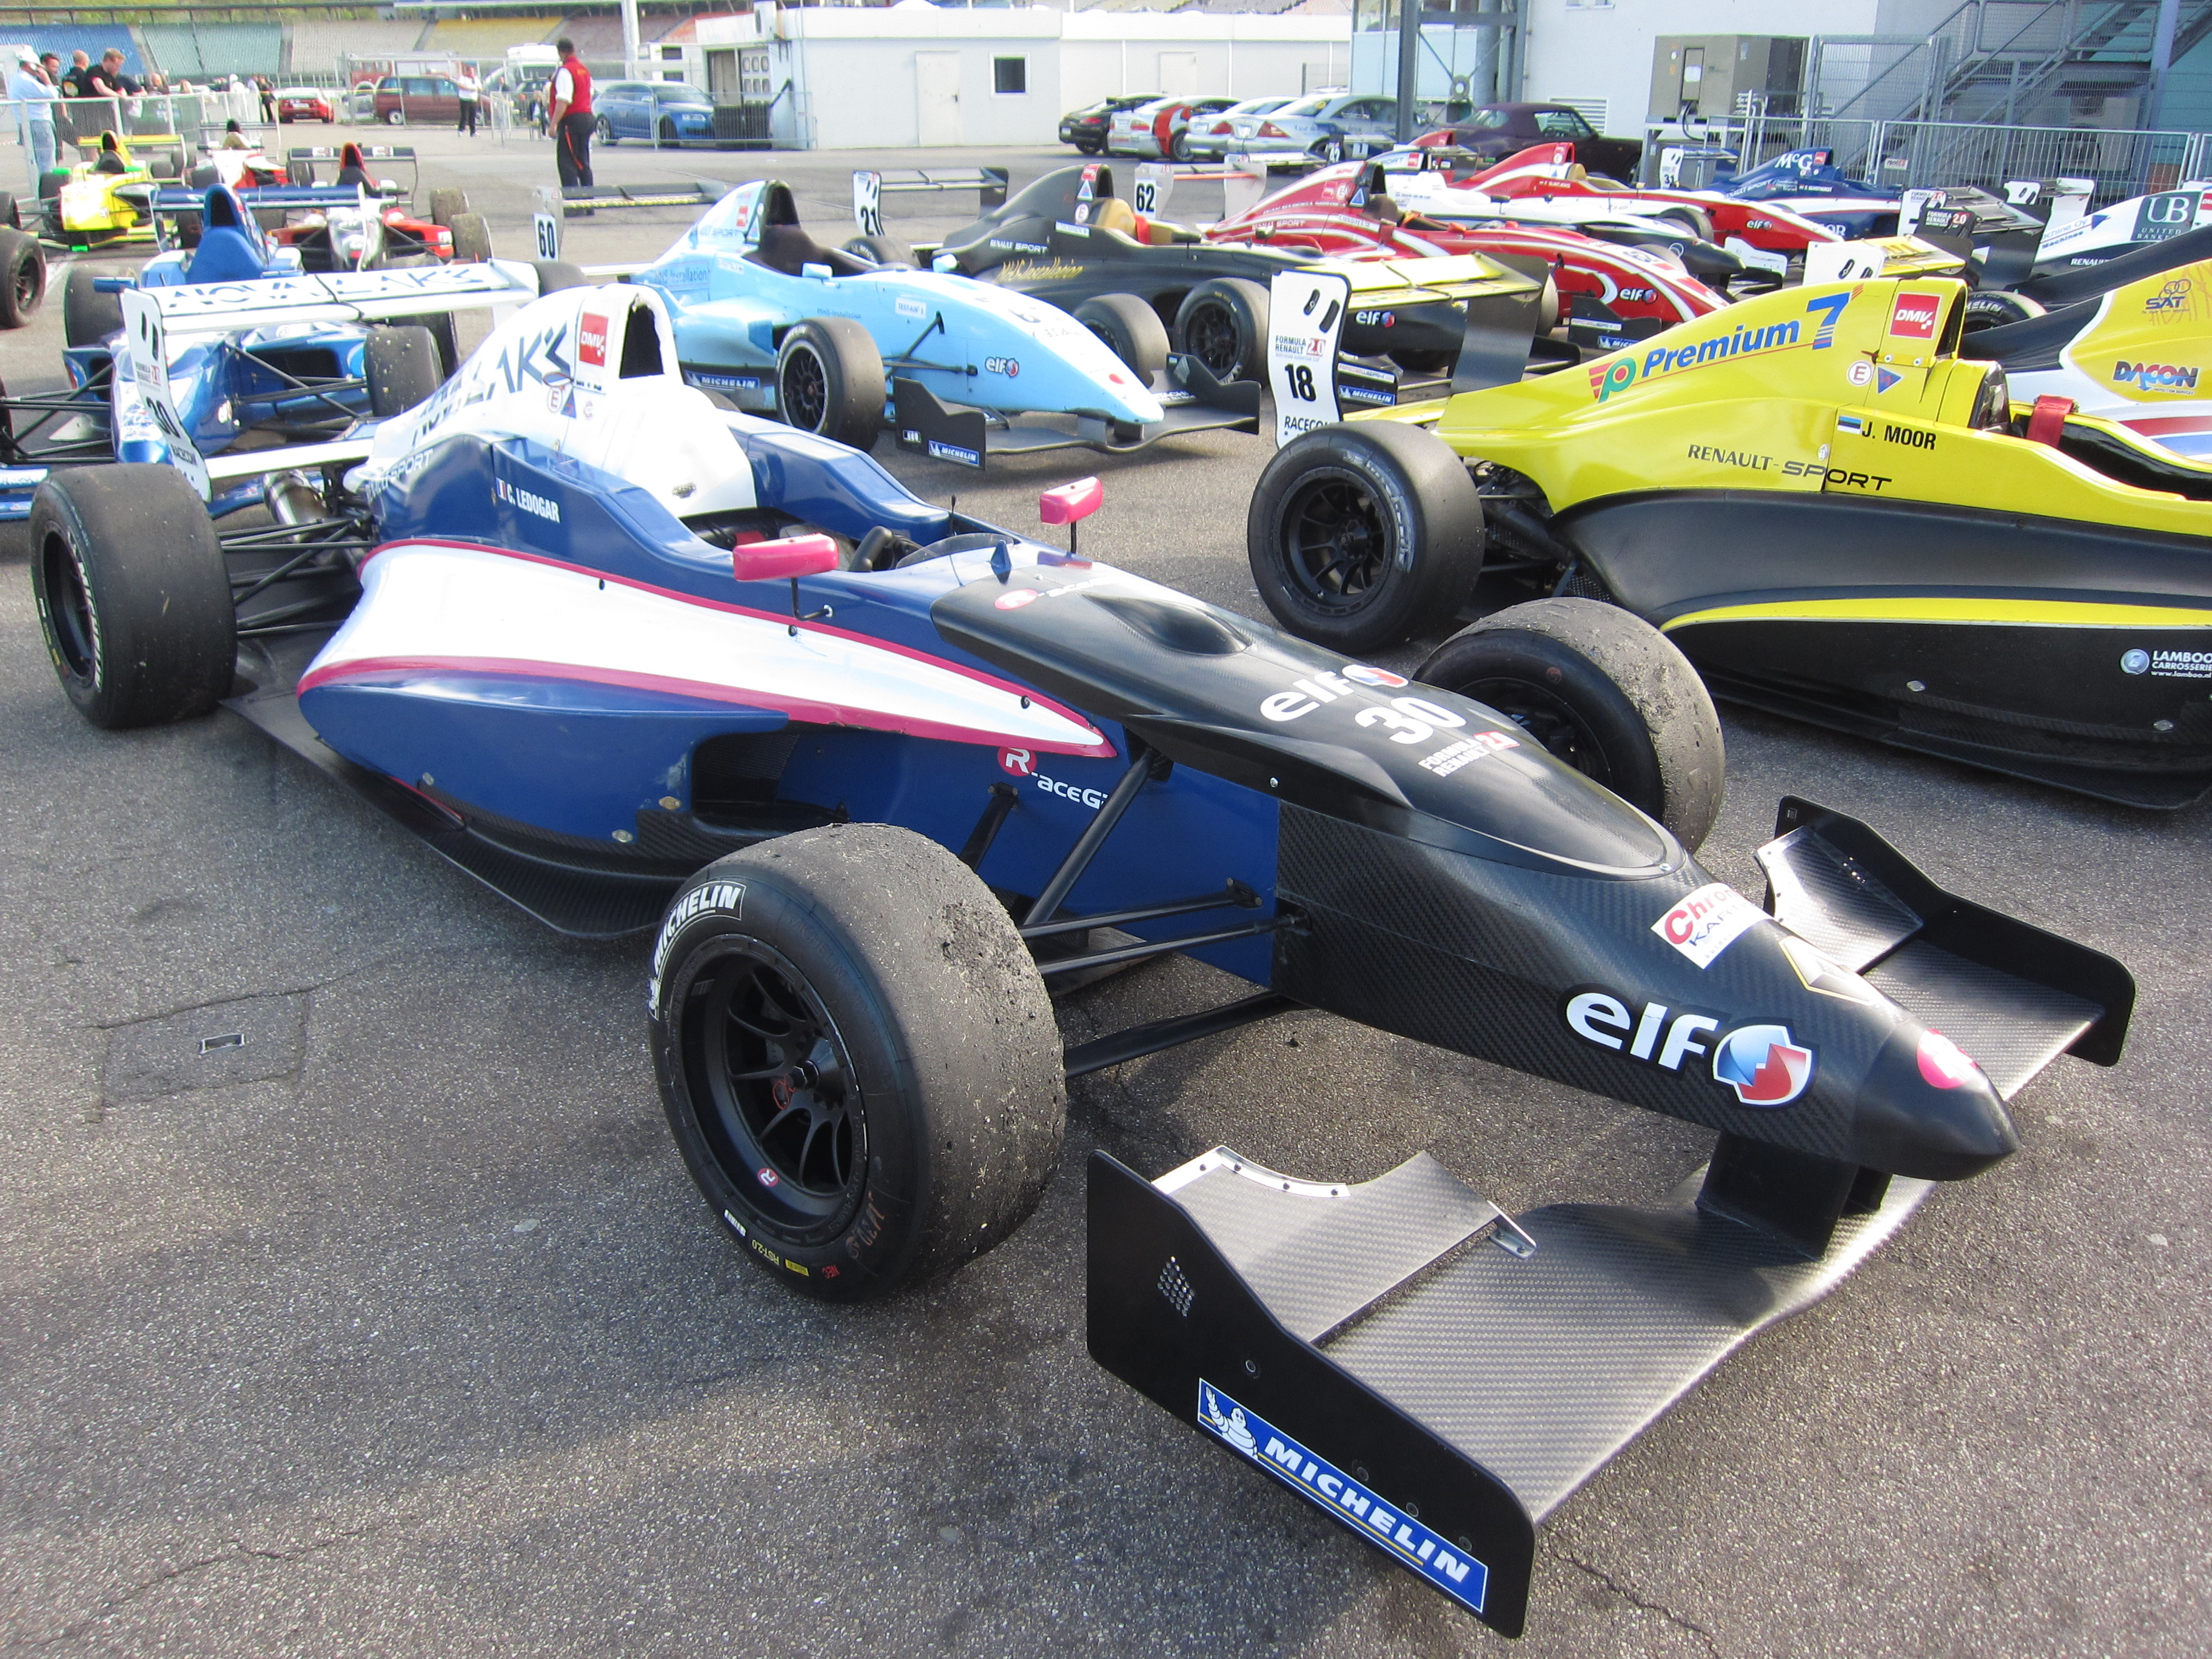 File:2010th Formula Renault 2.0 car (front right view).JPG